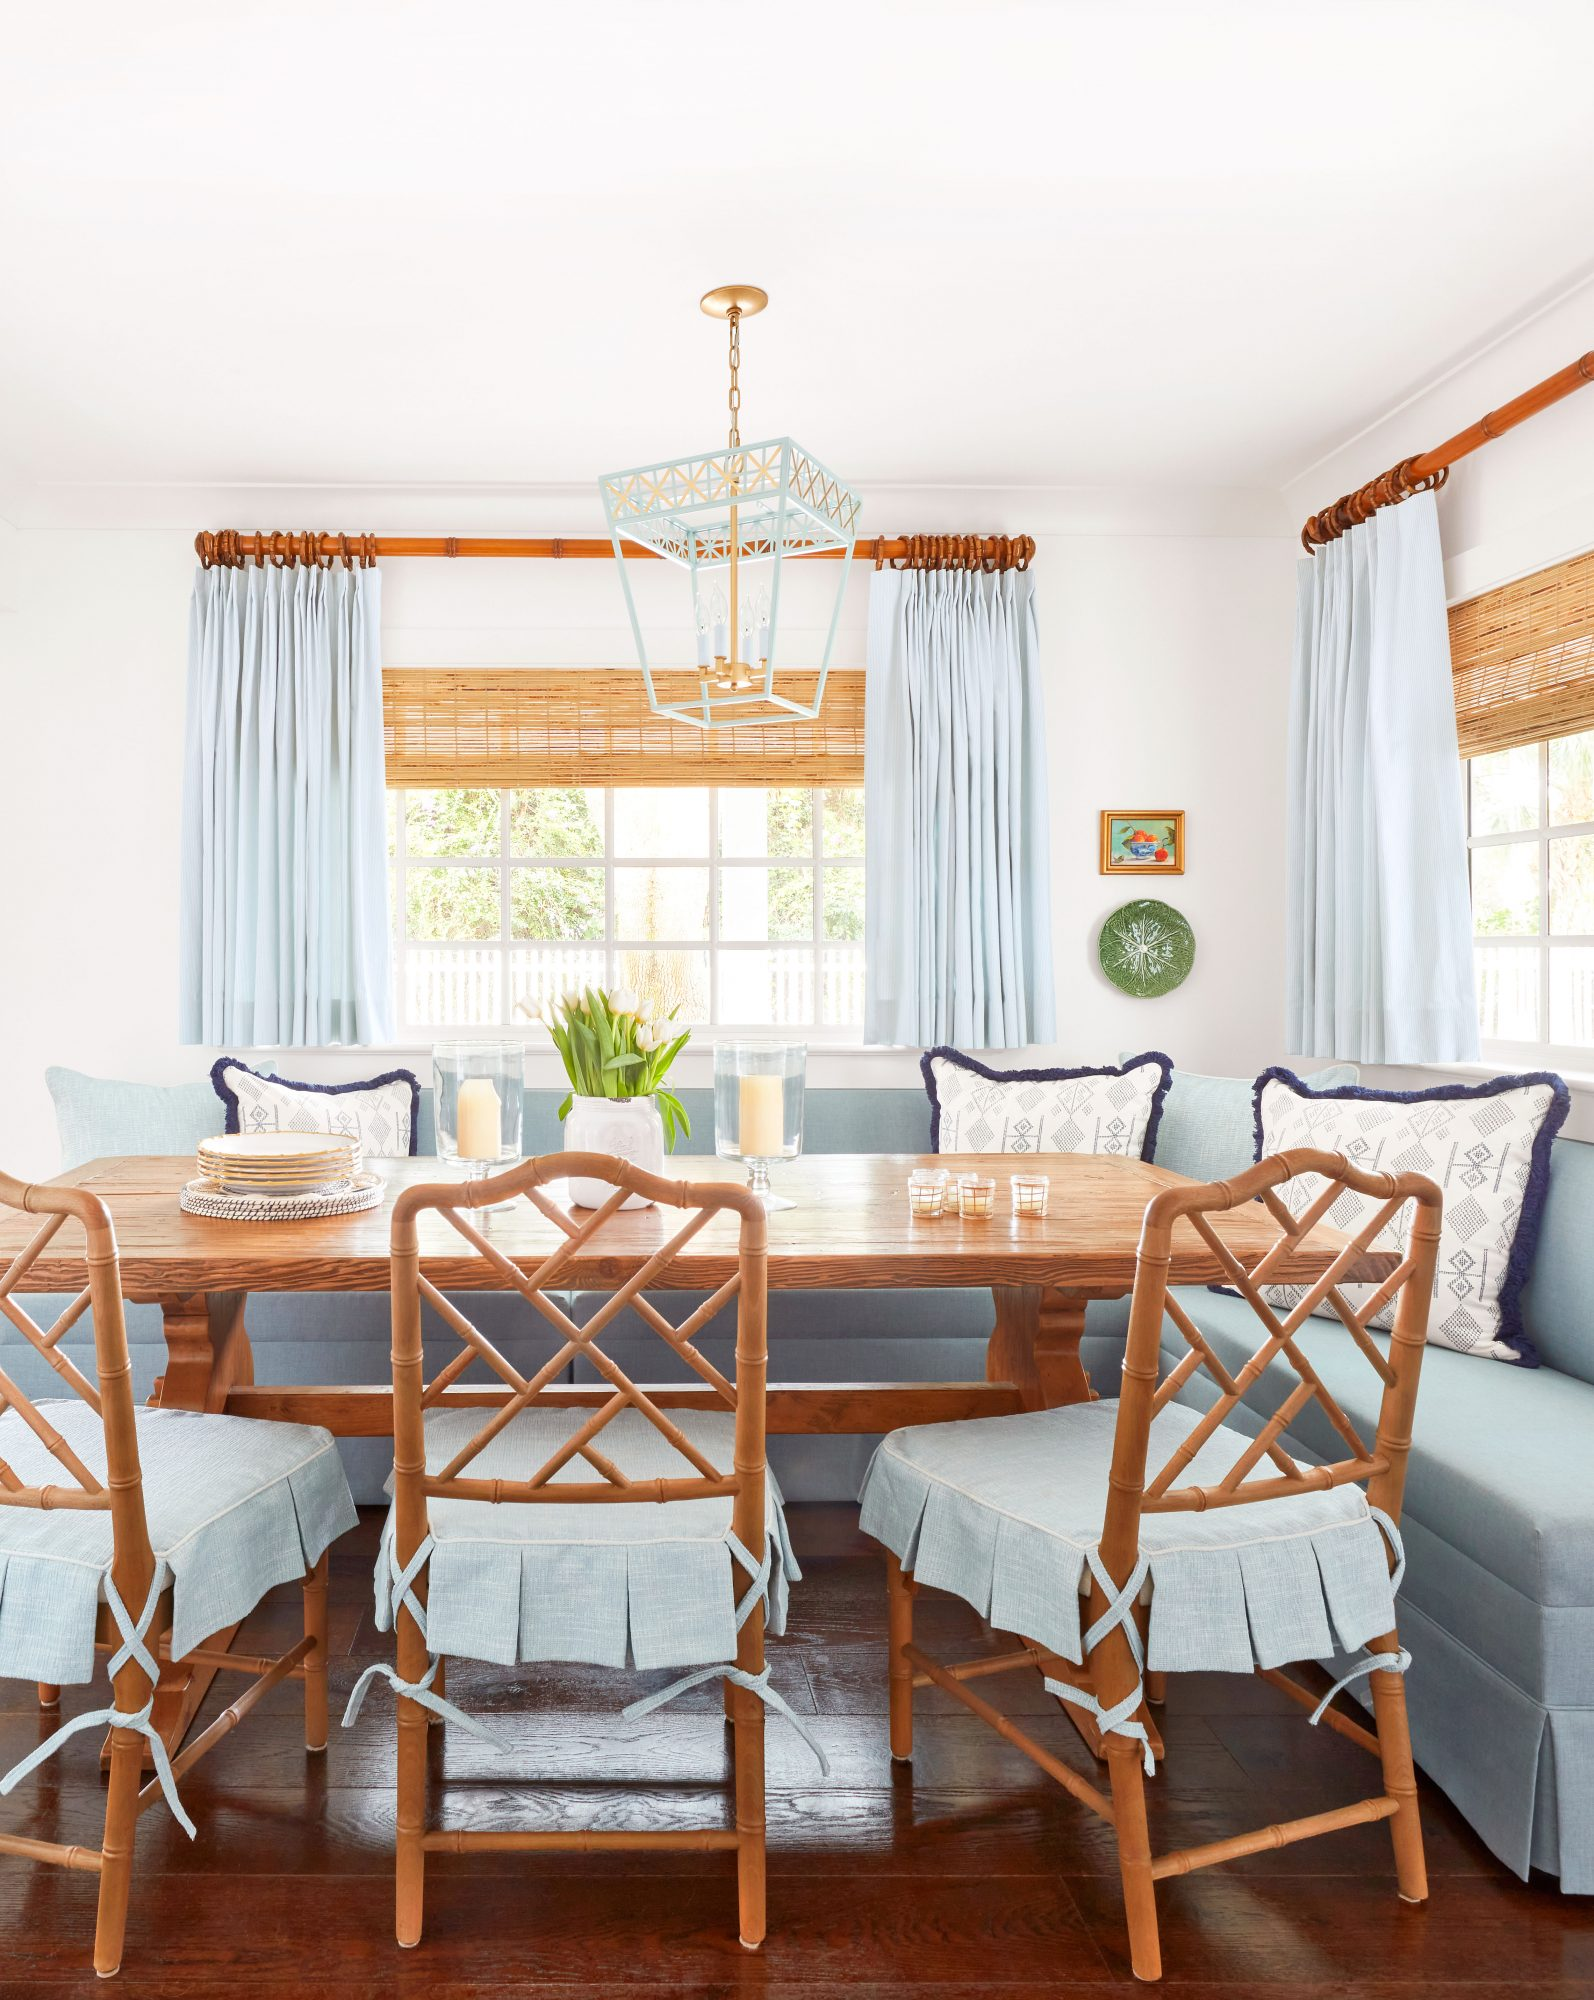 Banquet Dining Area in Blue and White